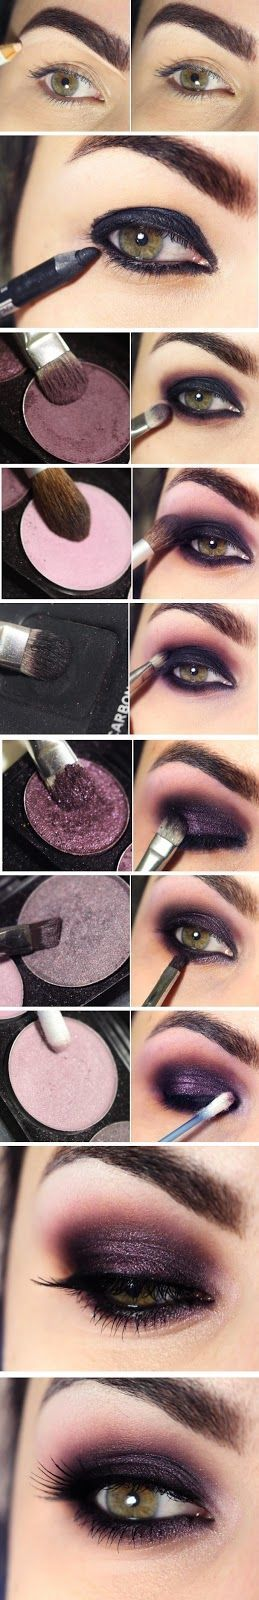 Best Beauty Tips and Makeup  Ideas  - Gorgeous Smokey Eyes Makeup Tutorials With Purple Shade / Best LoLus Makeup Fashion: